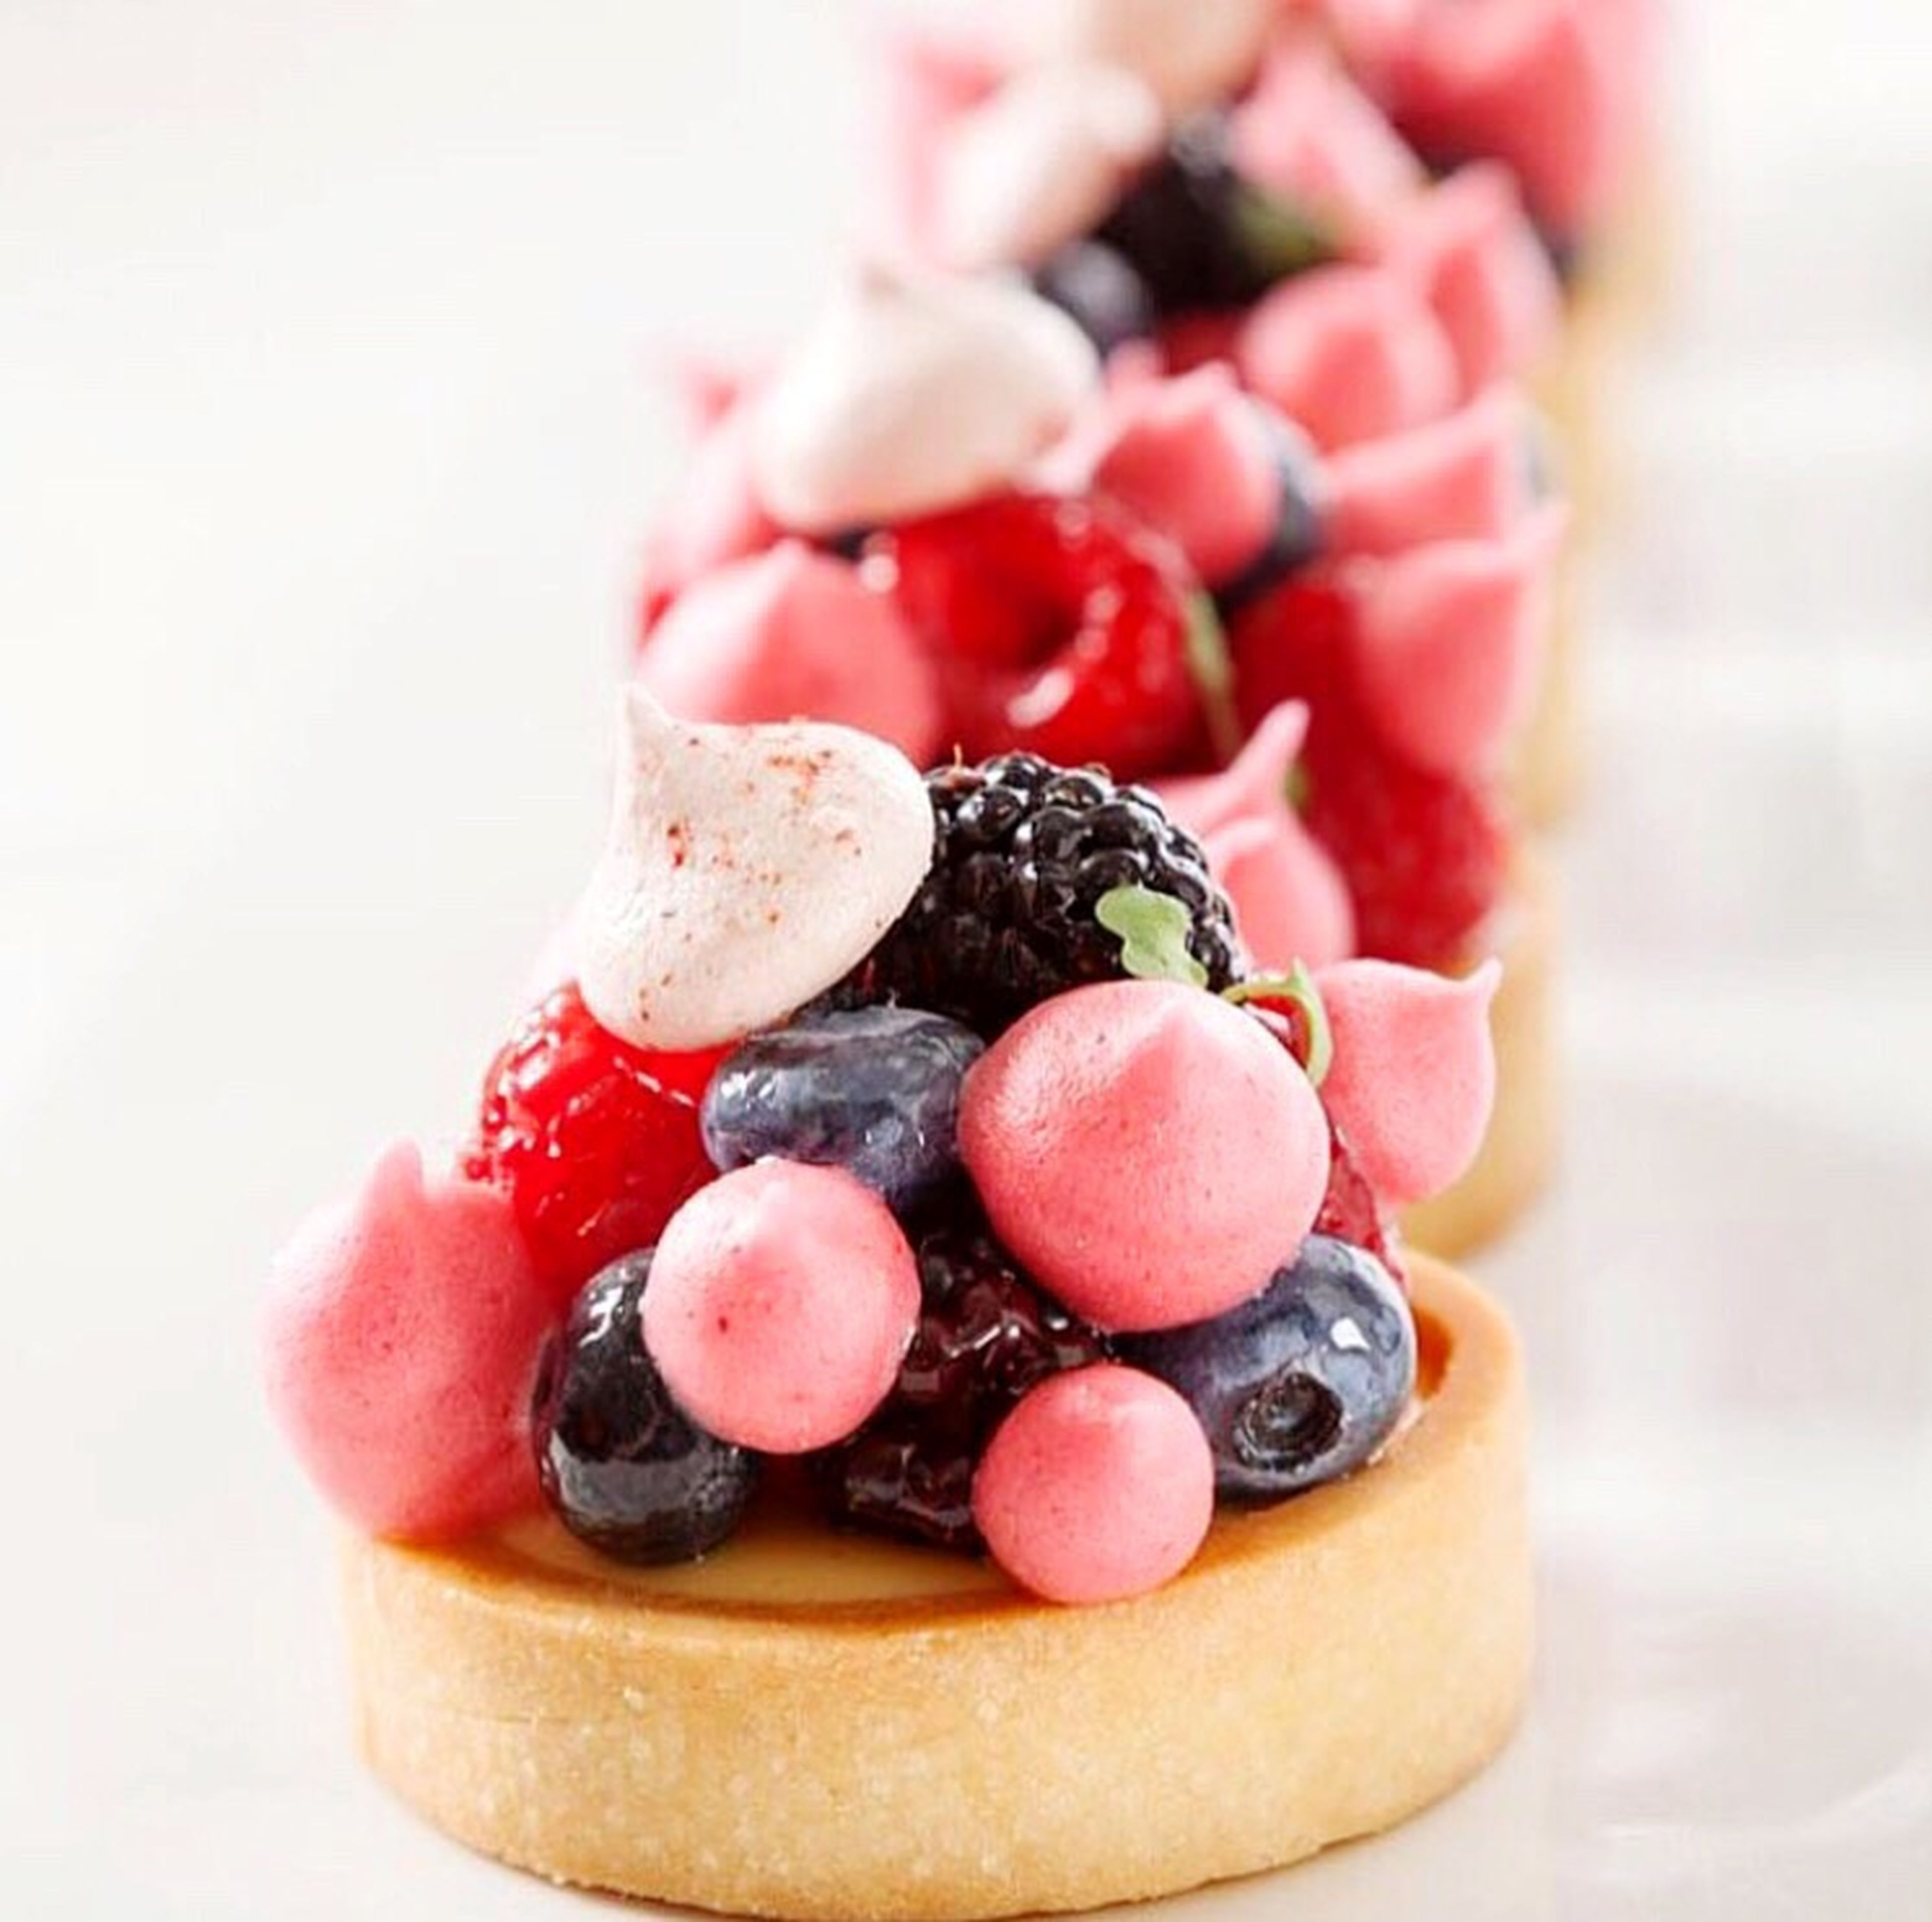 food and drink, food, freshness, indoors, fruit, sweet food, still life, close-up, dessert, indulgence, table, healthy eating, ready-to-eat, blueberry, strawberry, raspberry, temptation, chocolate, cake